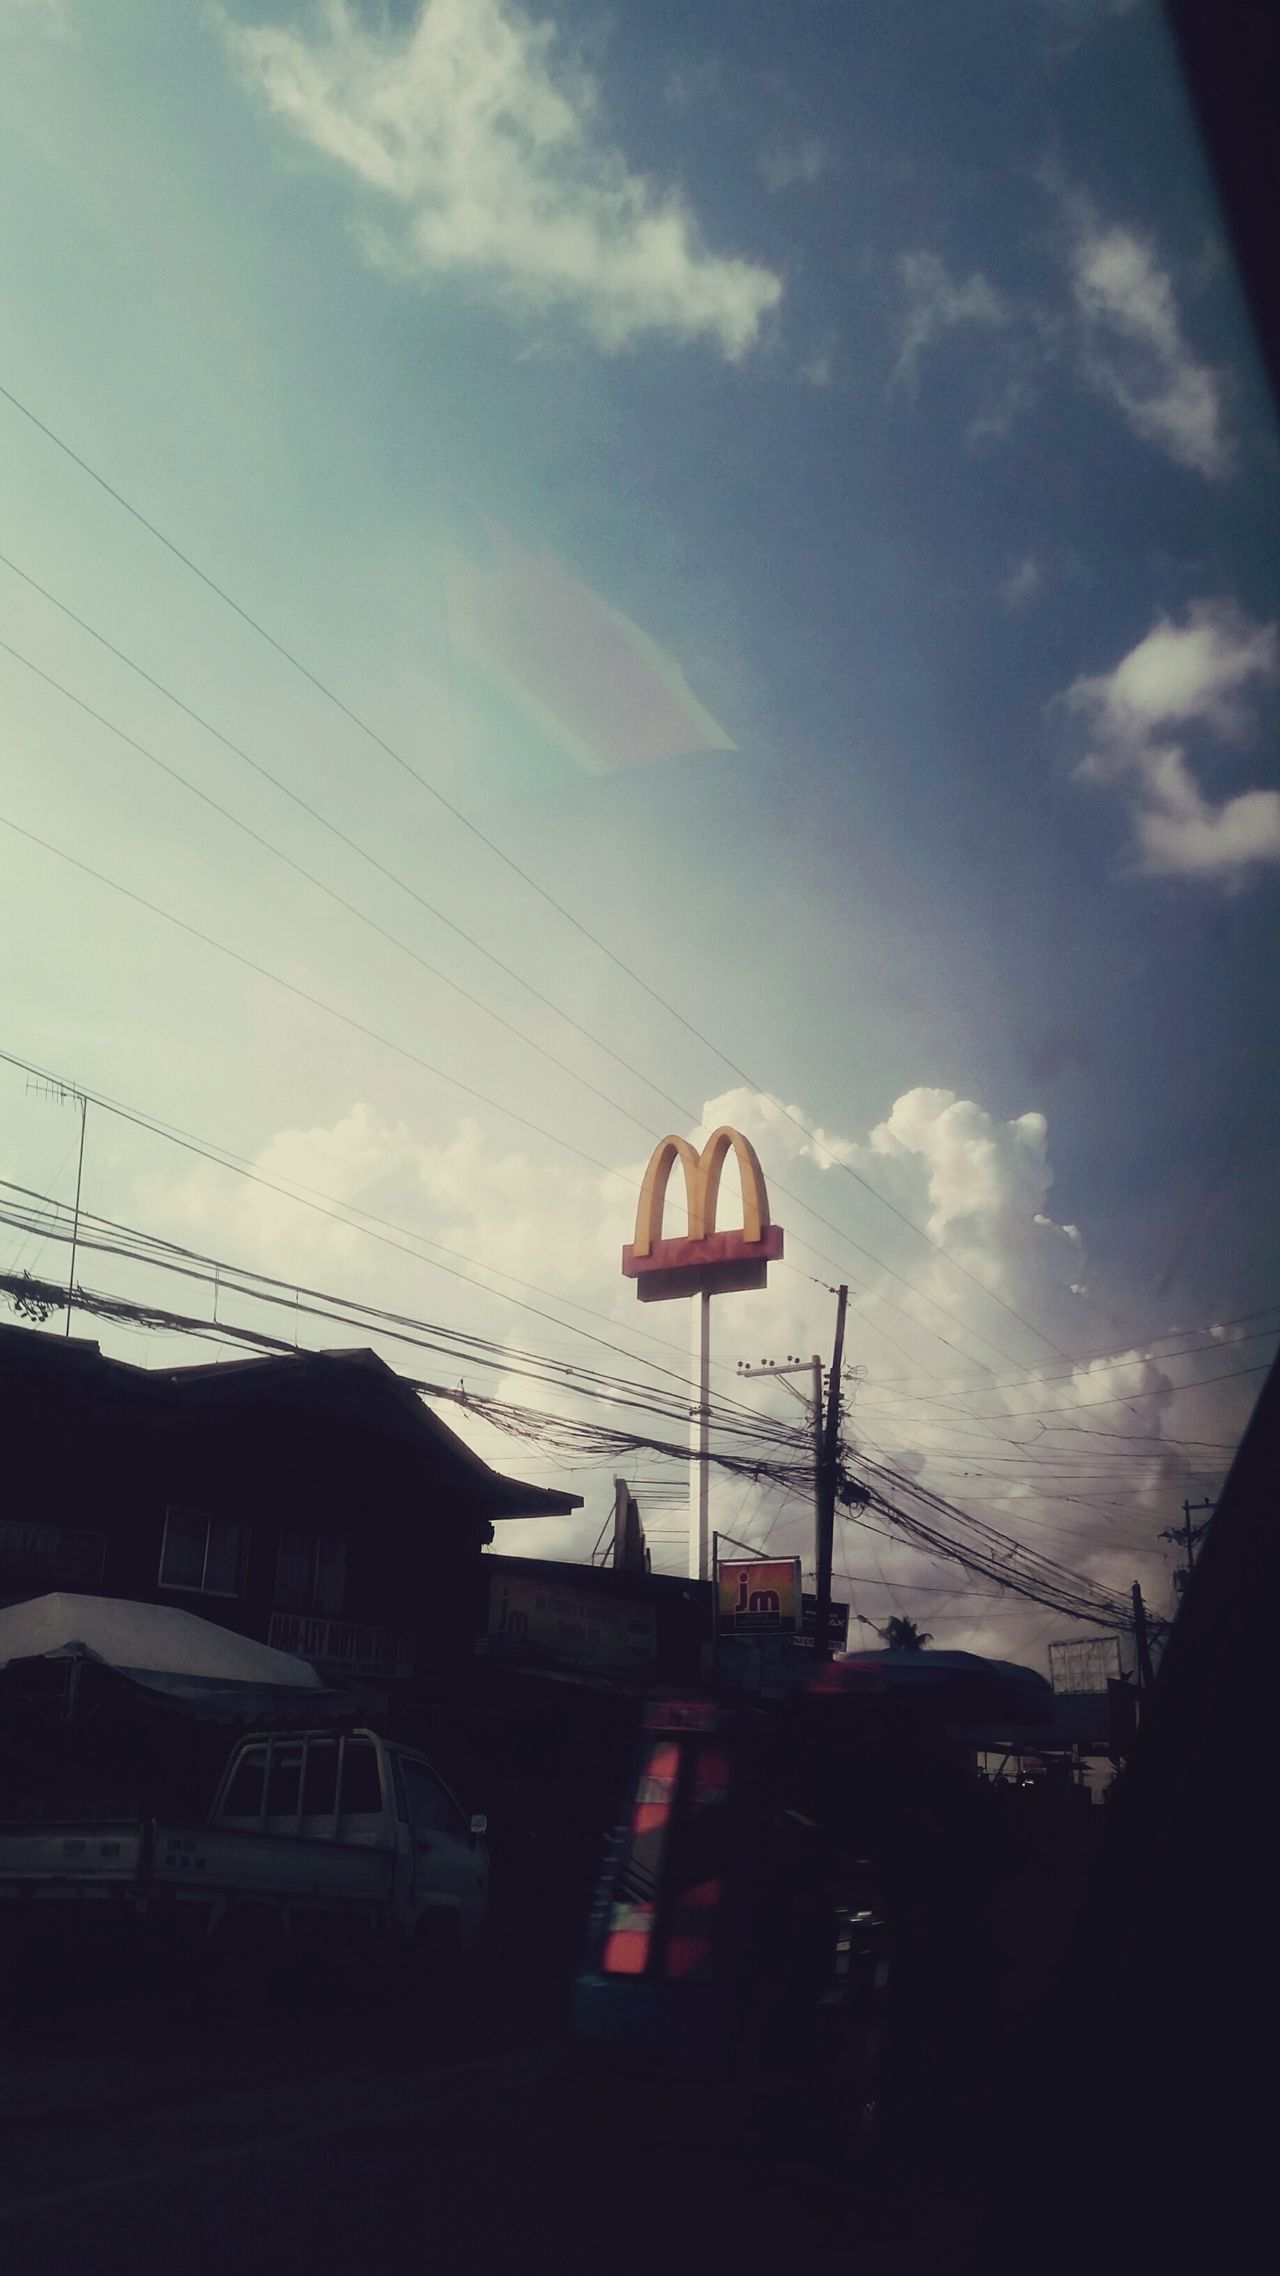 Roadtrip With The Cousins Outdoors City Life Town Mode Of Transport Transportation Bisayanibai Bisayatraveler Wandering Around BisayaNaAko Fastfoodtime!